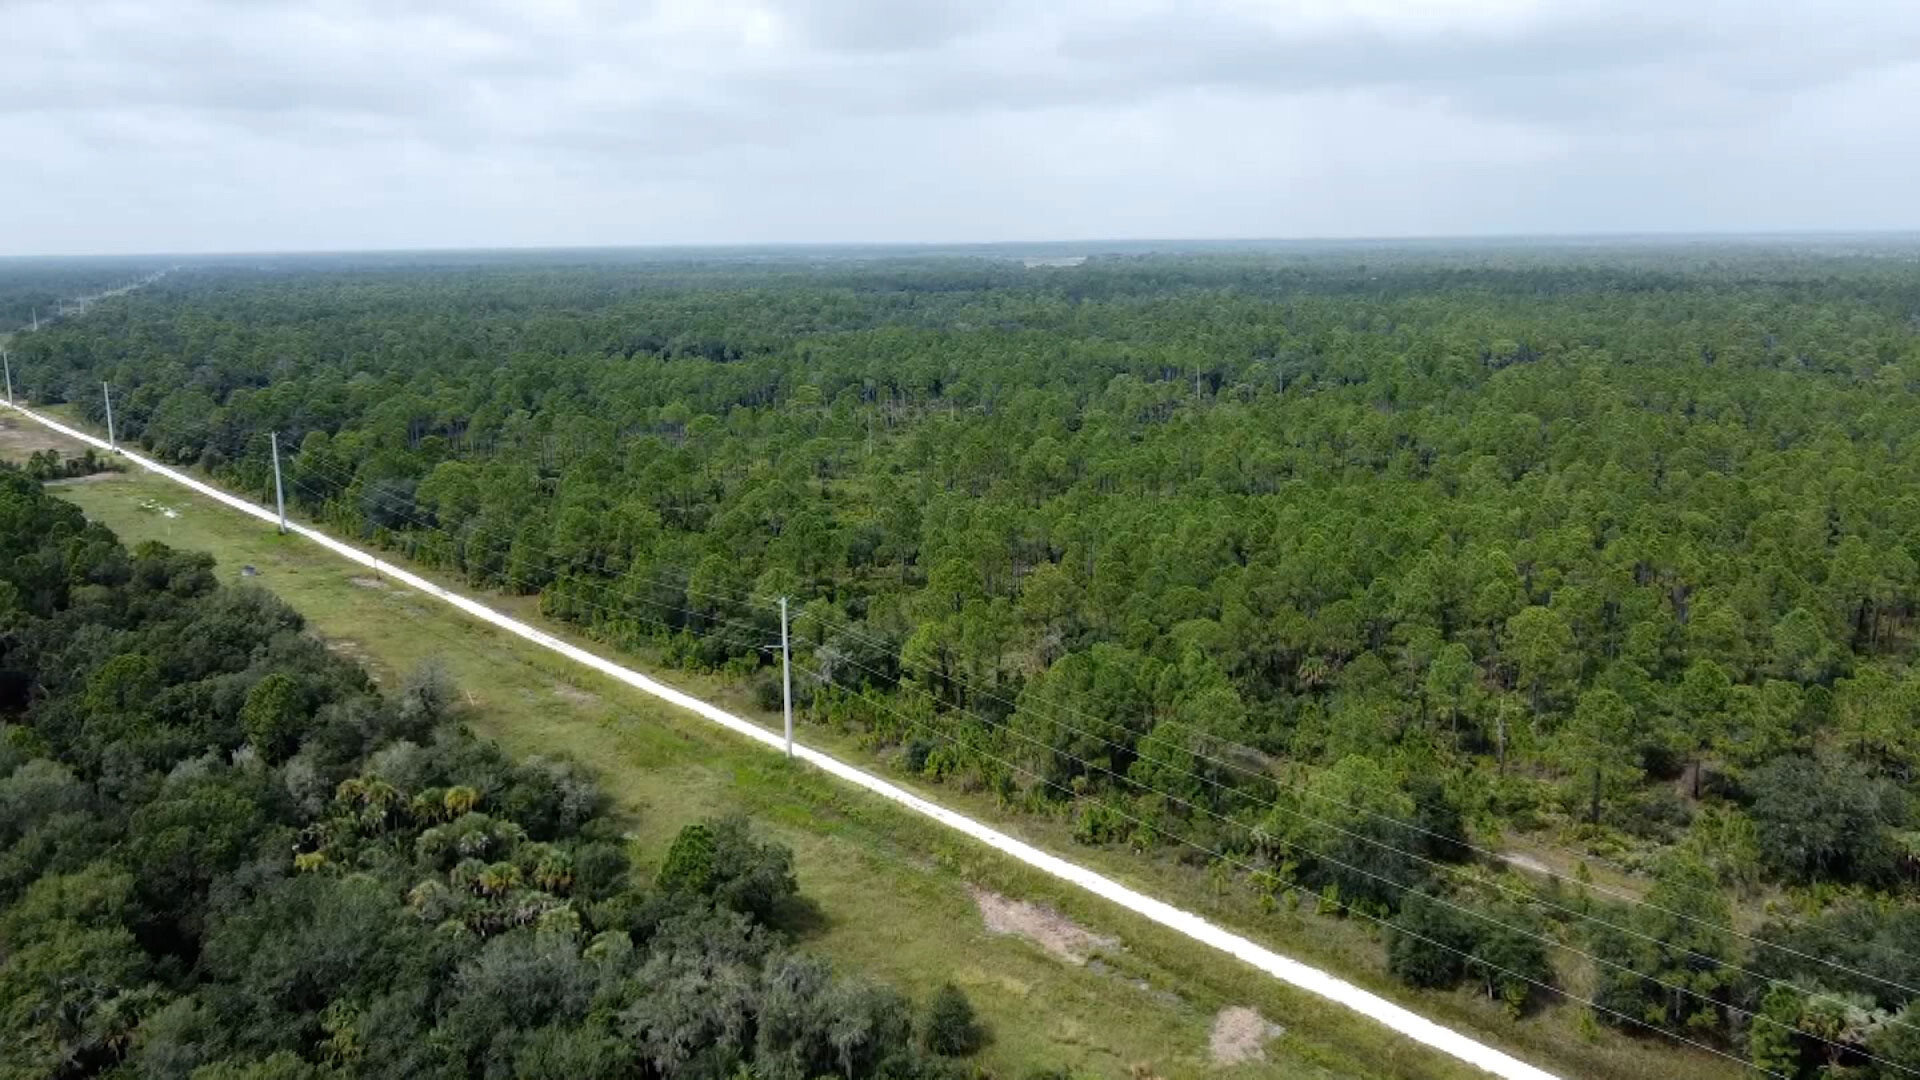 Florida nature reserve's swampy landscape made the search for Brian Laundrie treacherous